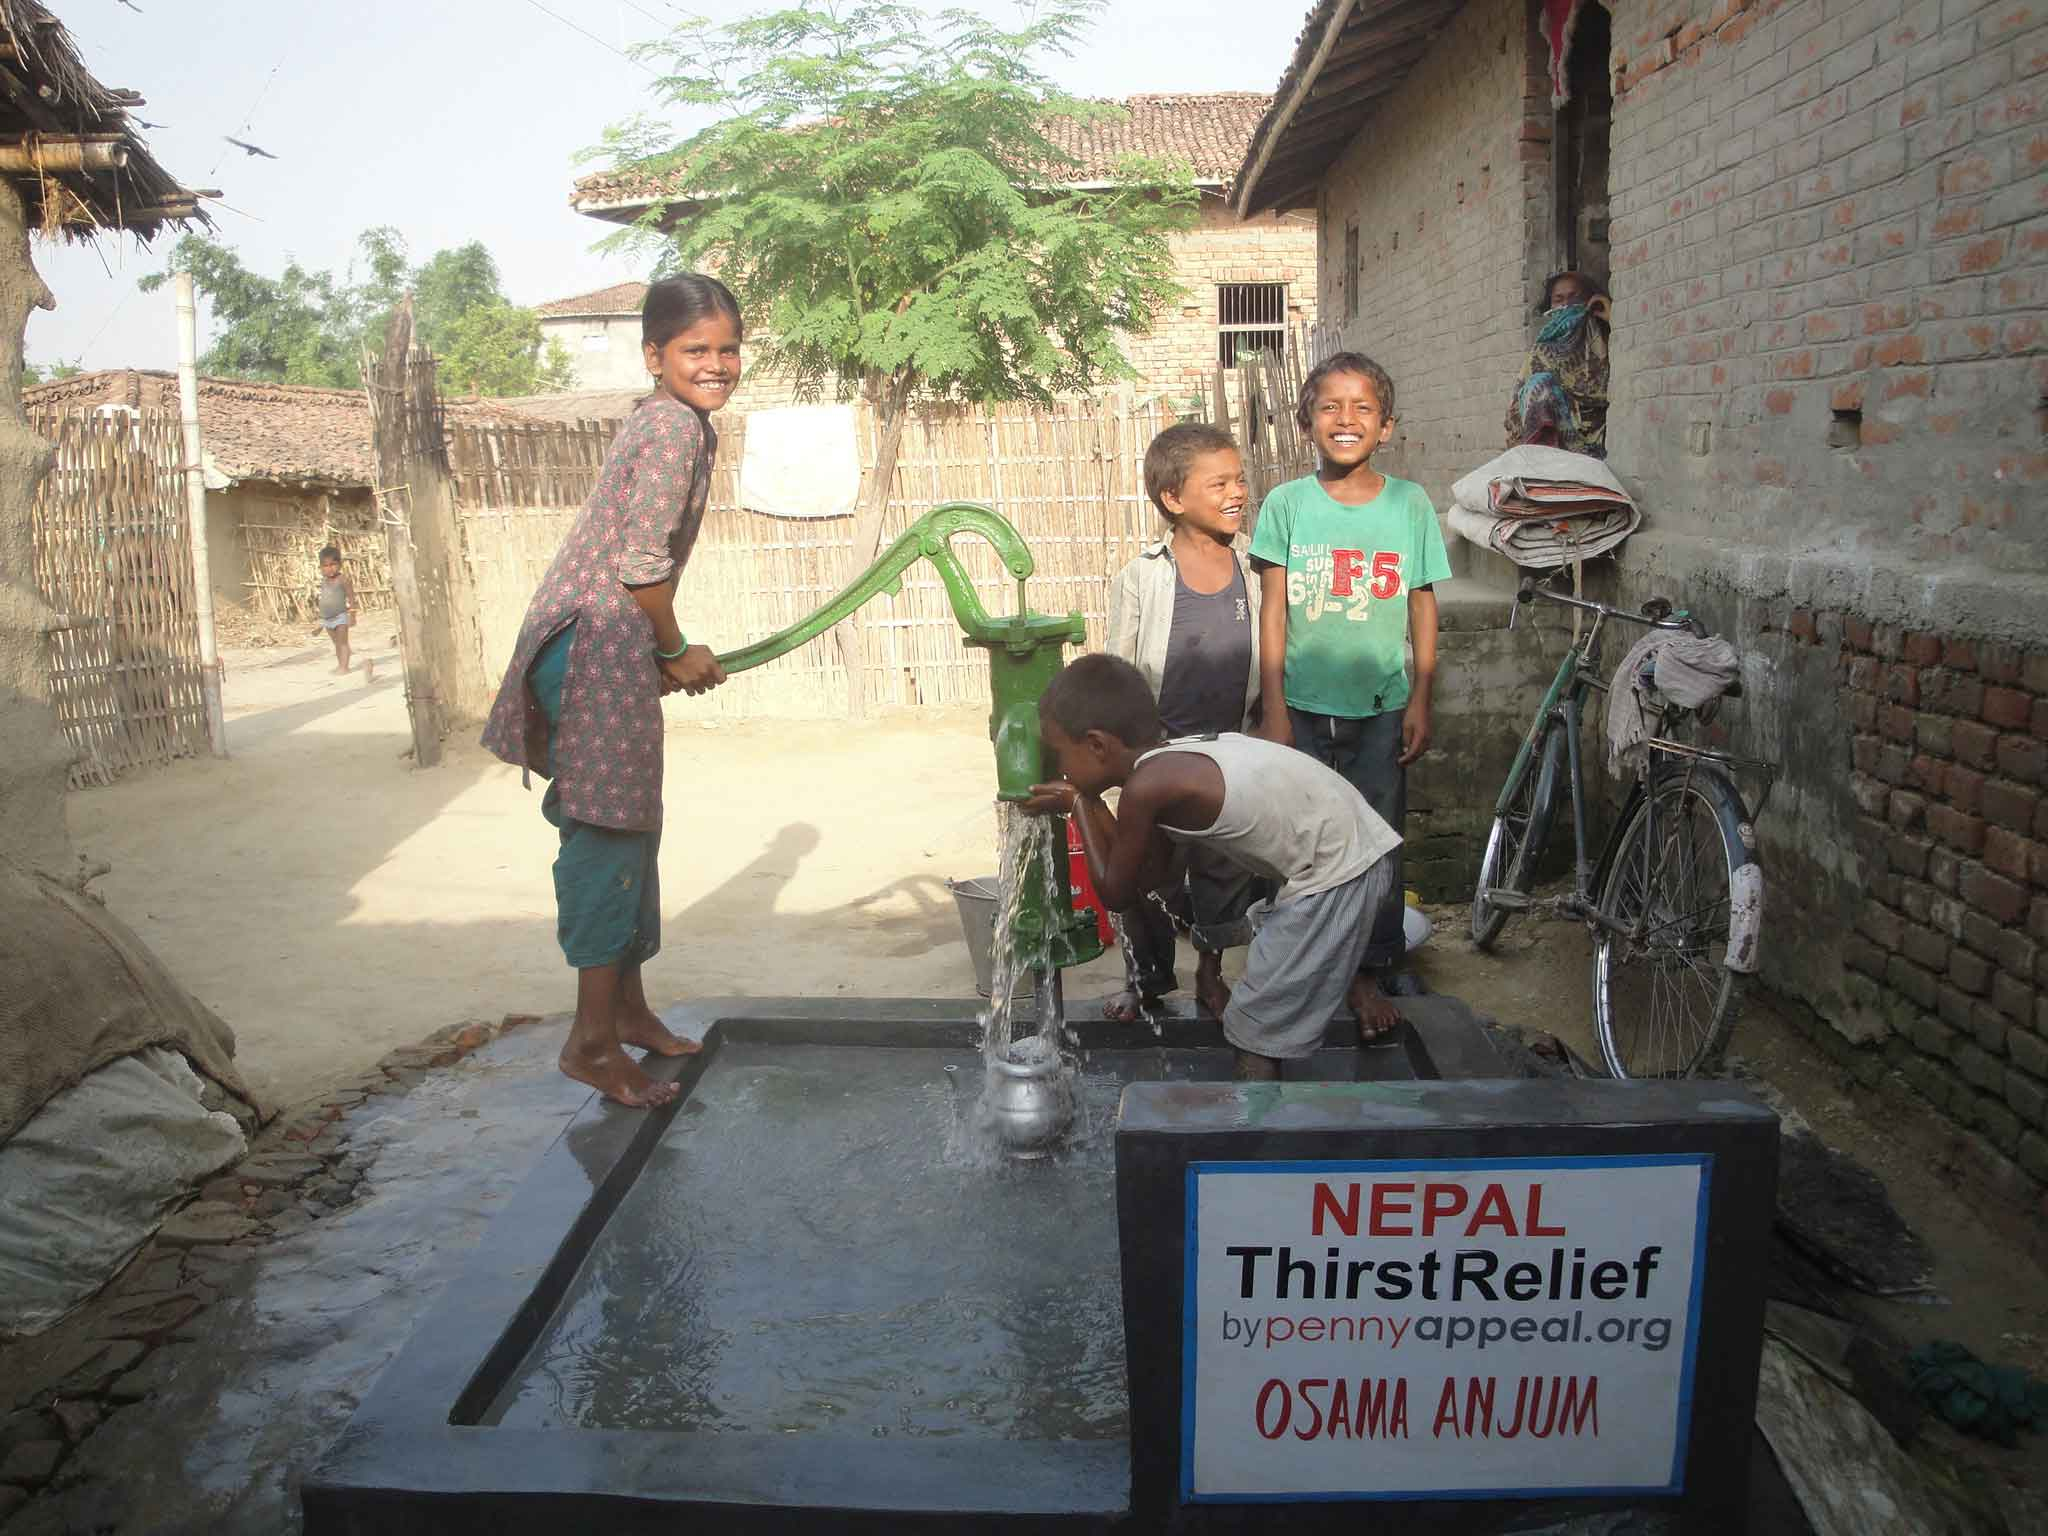 Thirst Relief well in Nepal